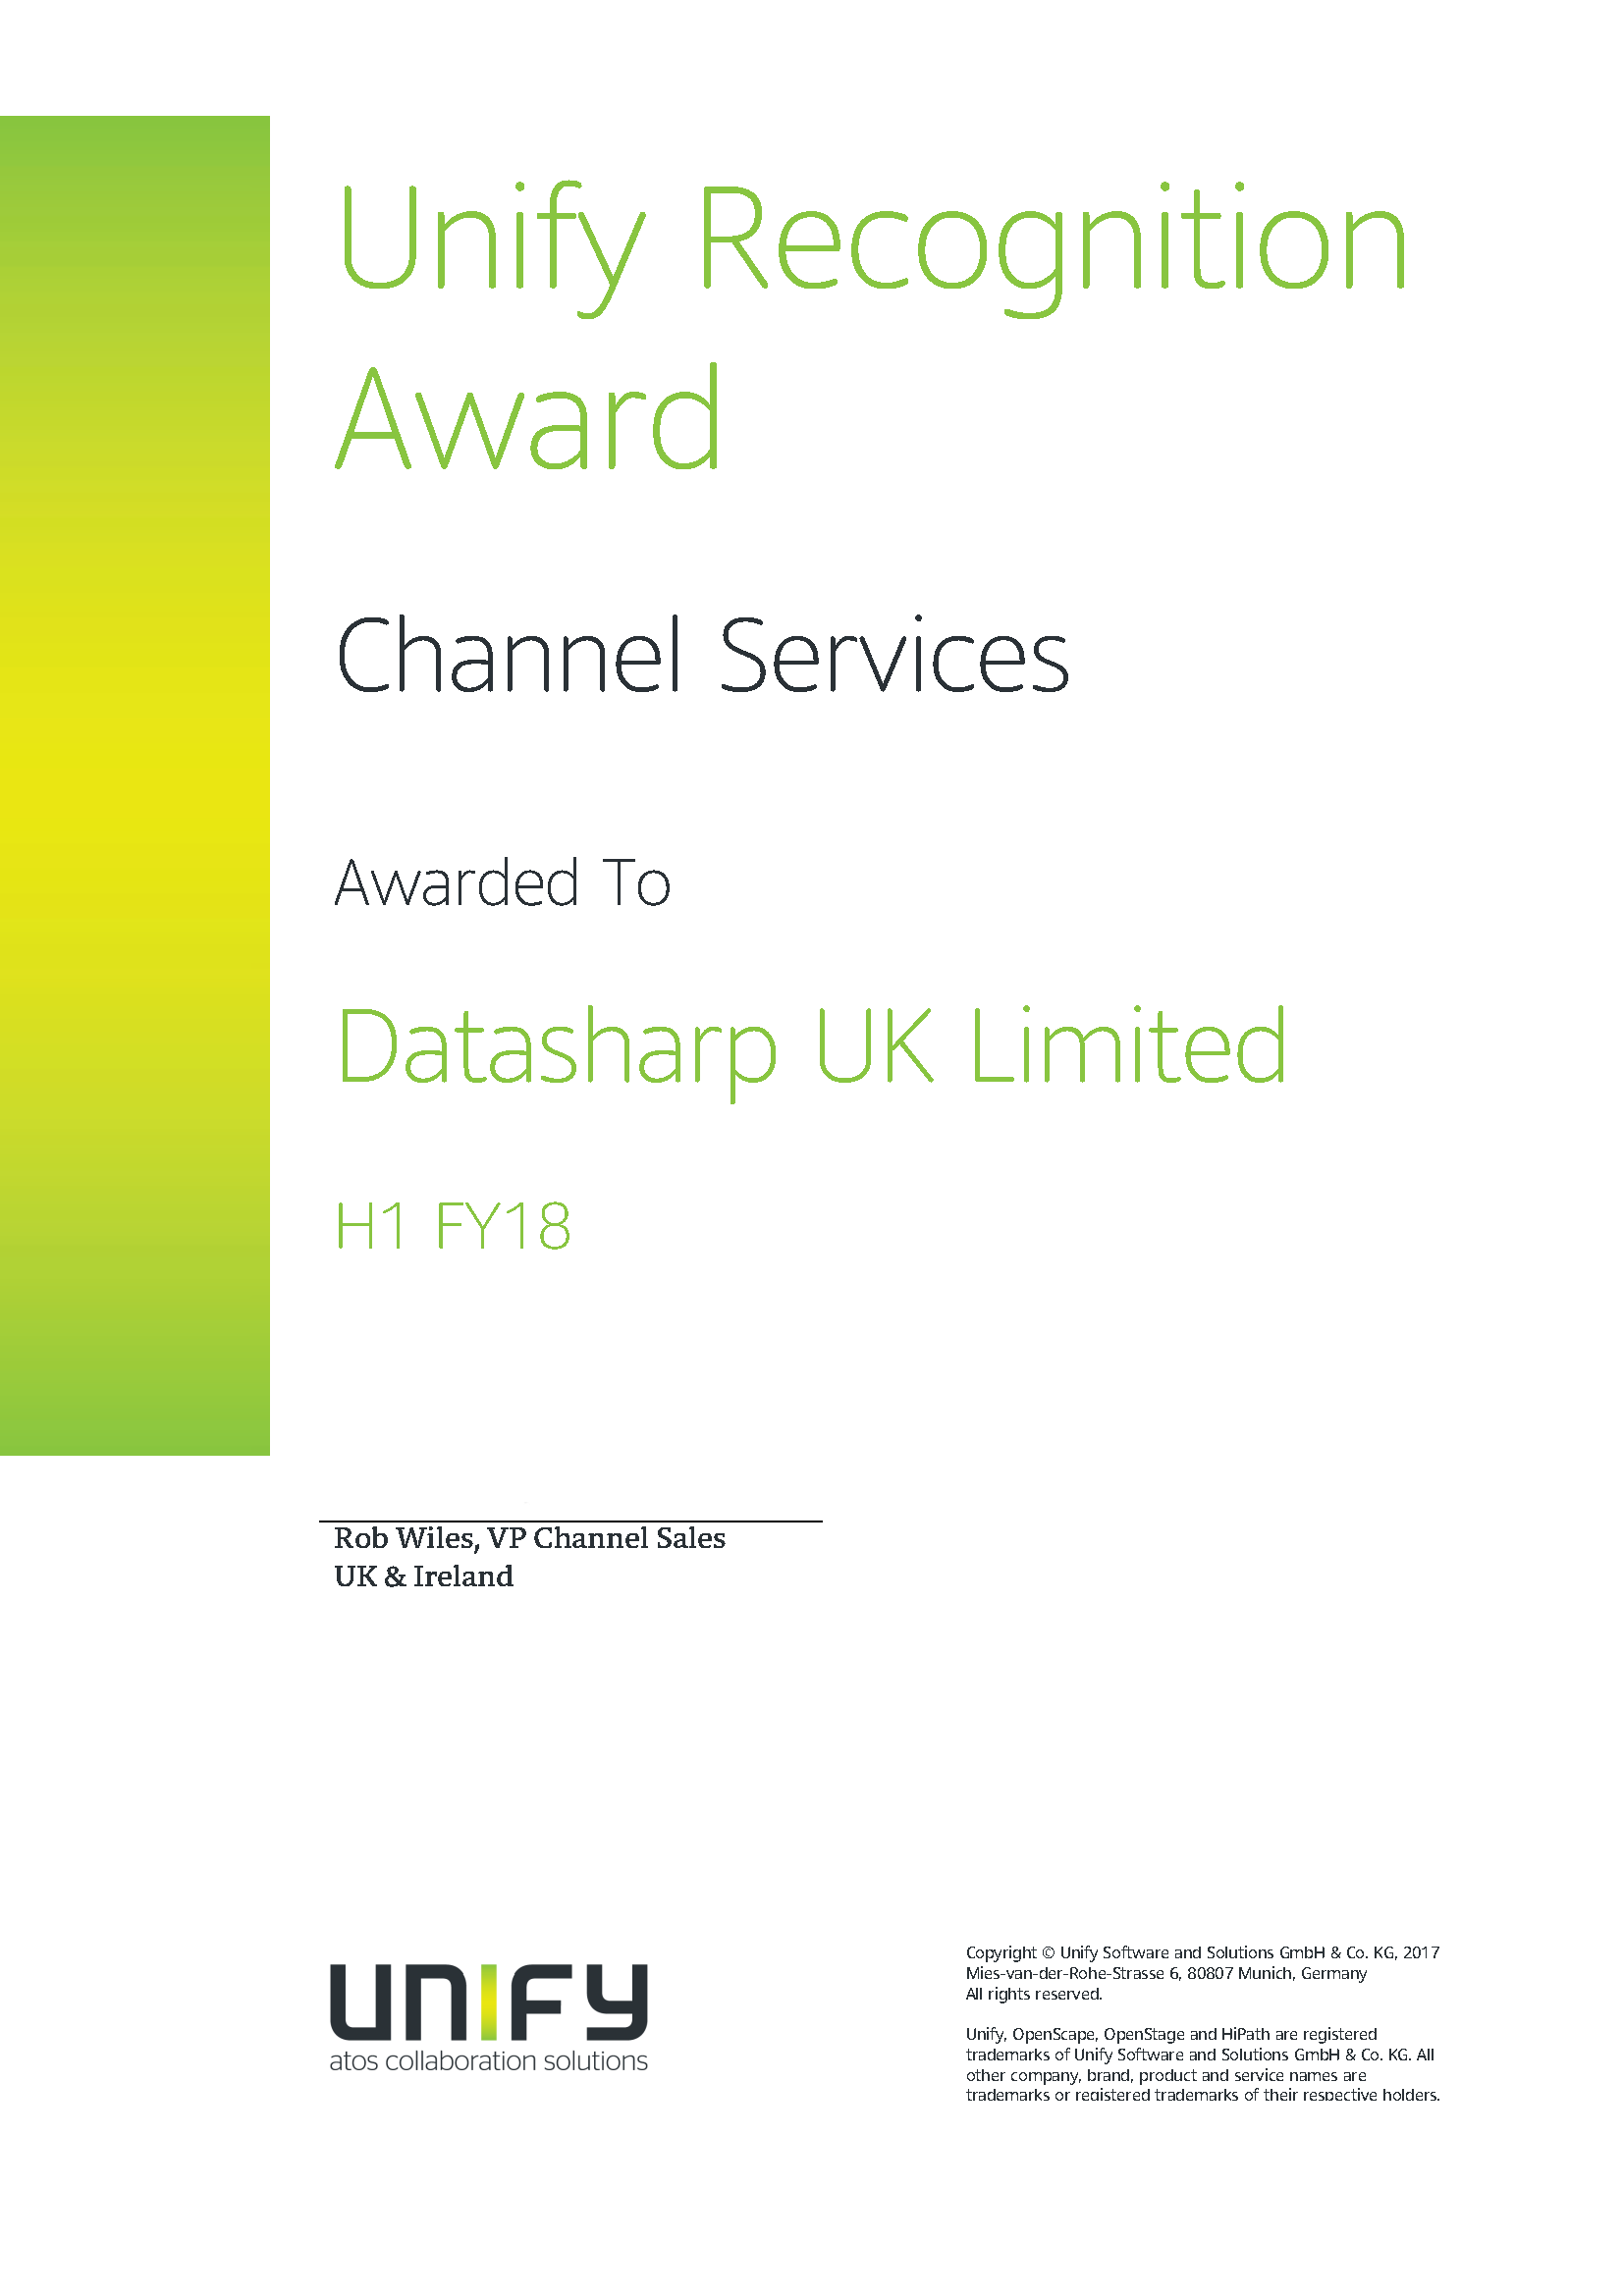 Unify Recognition Award - Channel Services